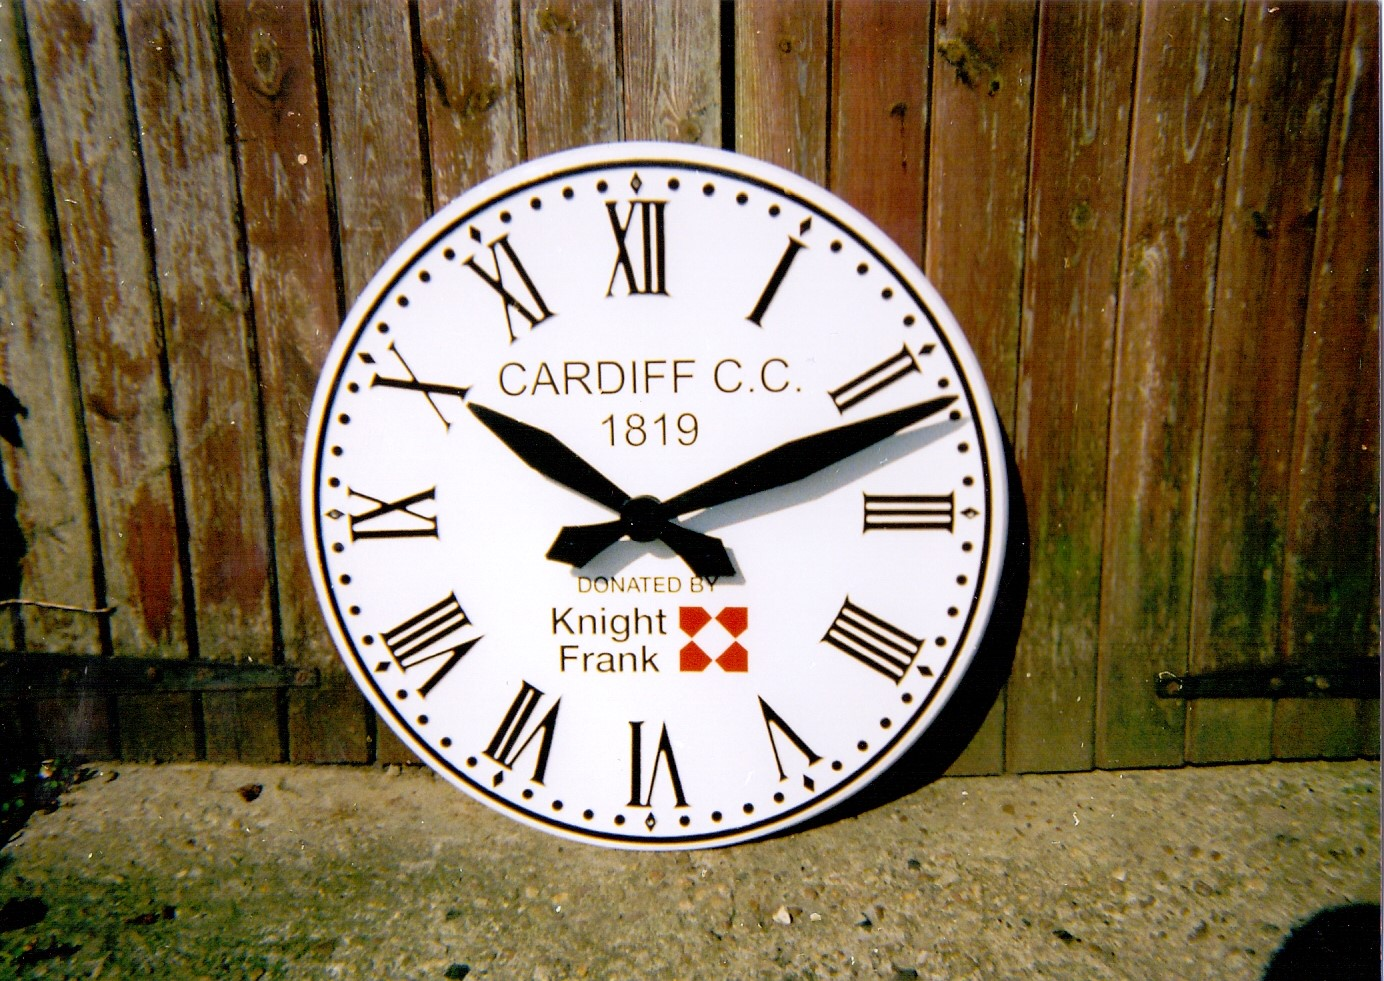 Exterior Clock with Corporate Branding